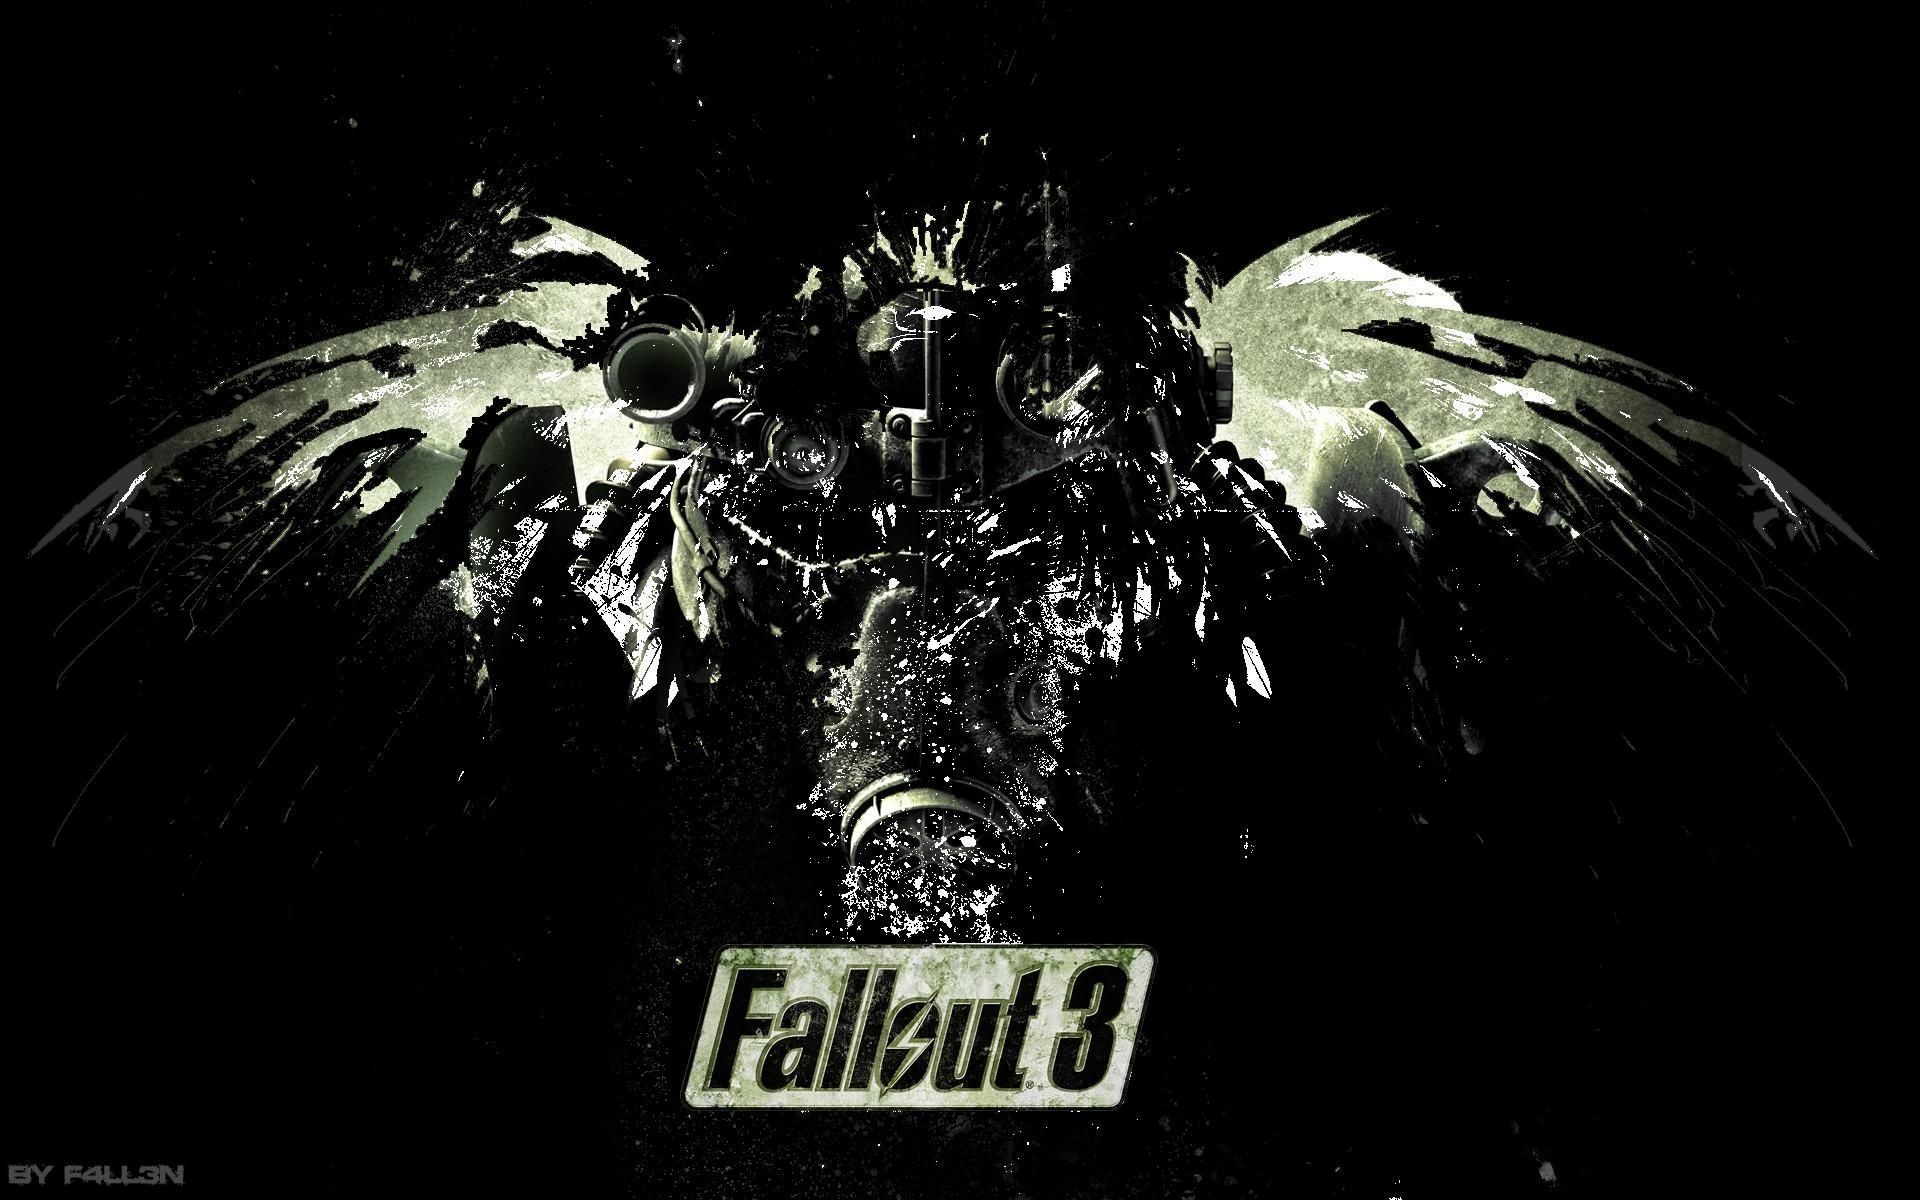 Fallout 3 Wallpapers | Best Wallpapers